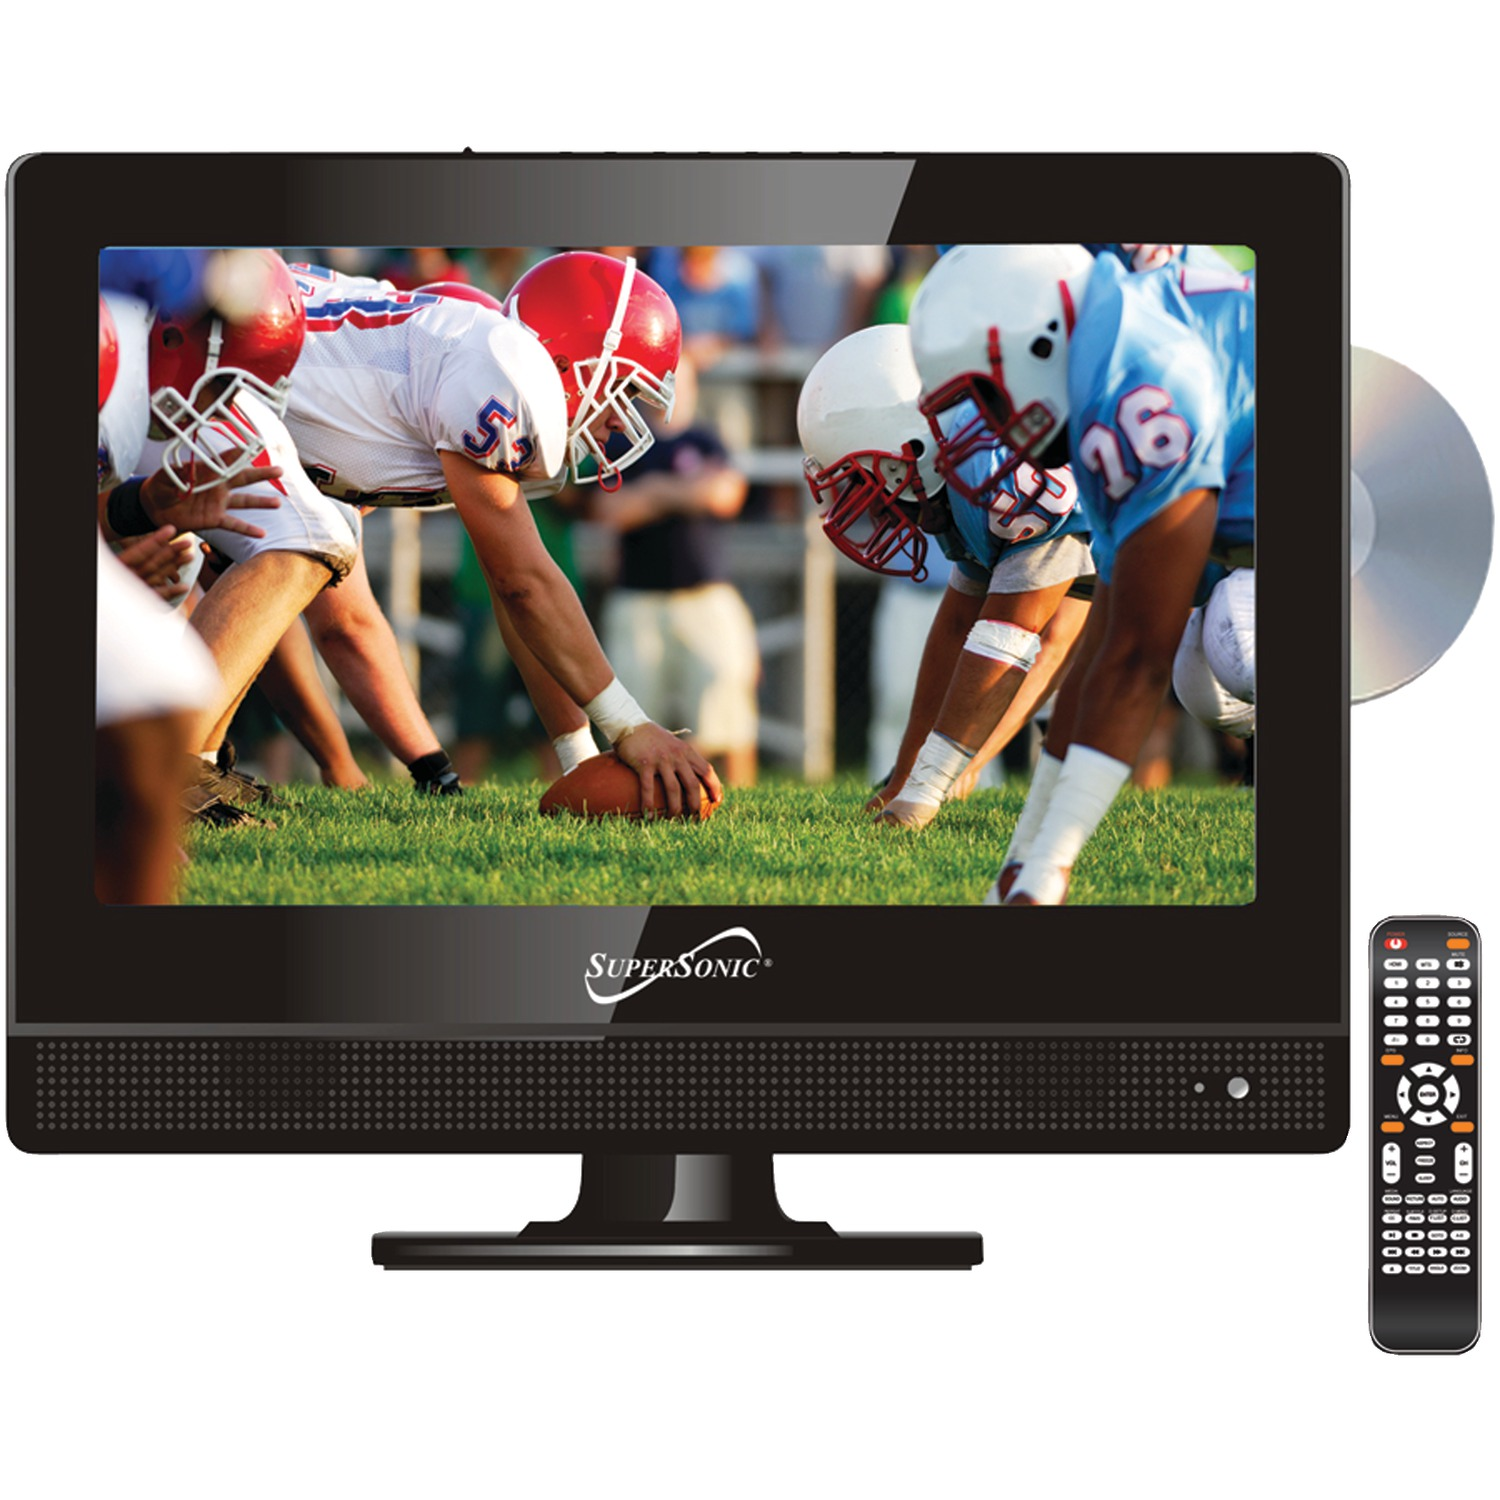 "Supersonic SC-1312 13.3"" 720p Widescreen LED HDTV/DVD Combination"